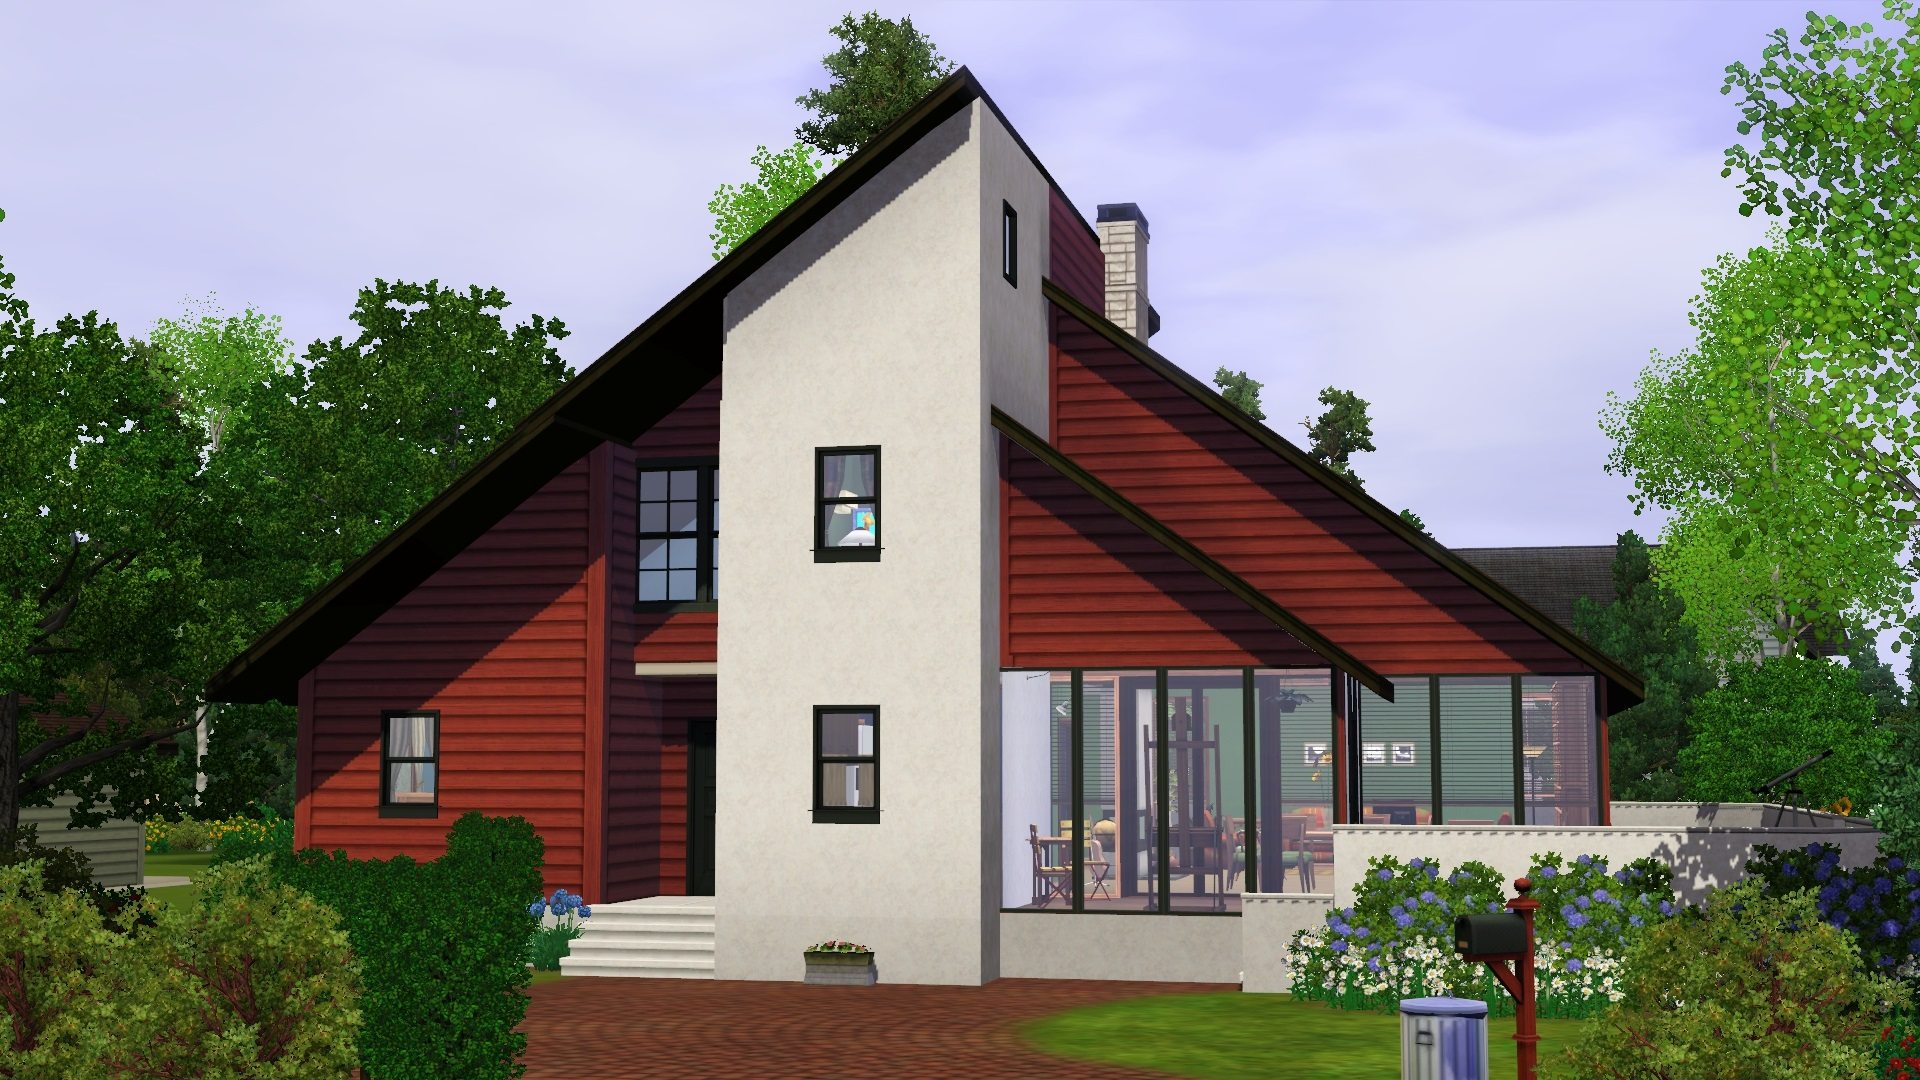 Mod the sims 90 39 s contemporary house for 90s modern house